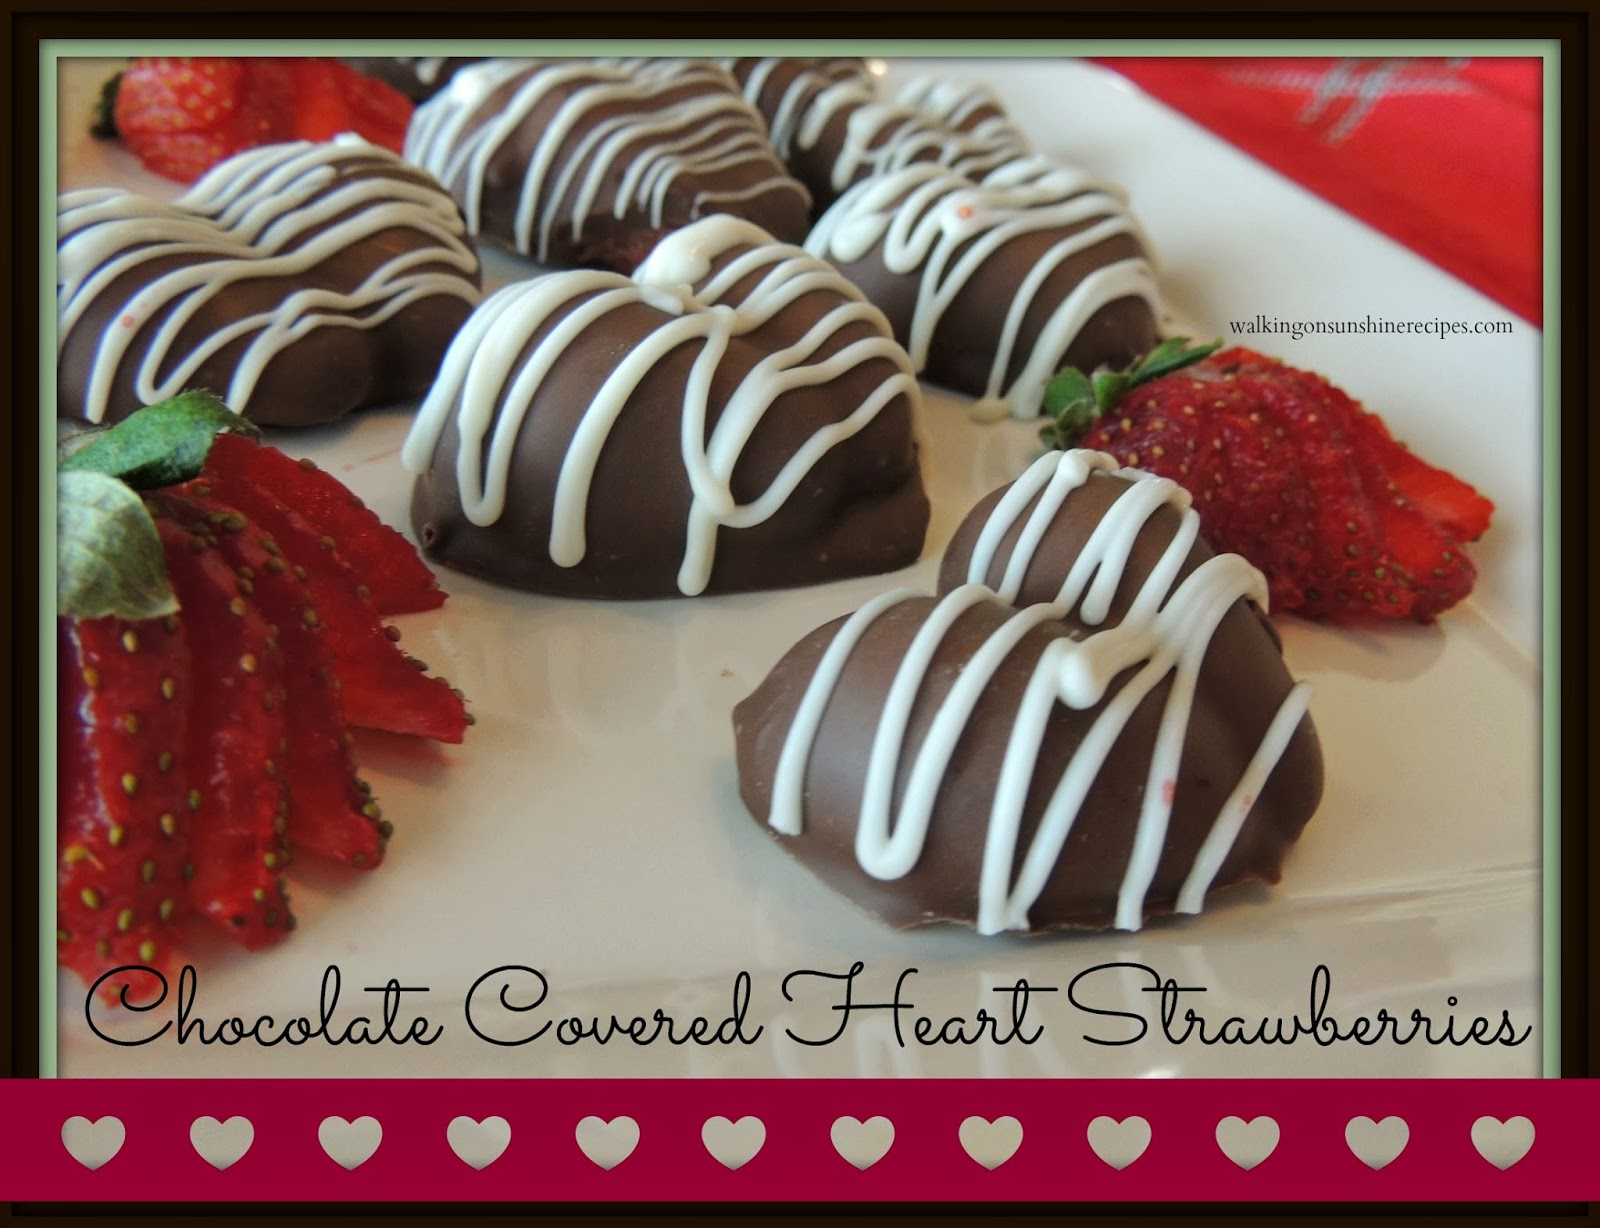 Chocolate Covered Heart Shaped Strawberries are a delicious treat for Valentine's Day from Walking on Sunshine Recipes.